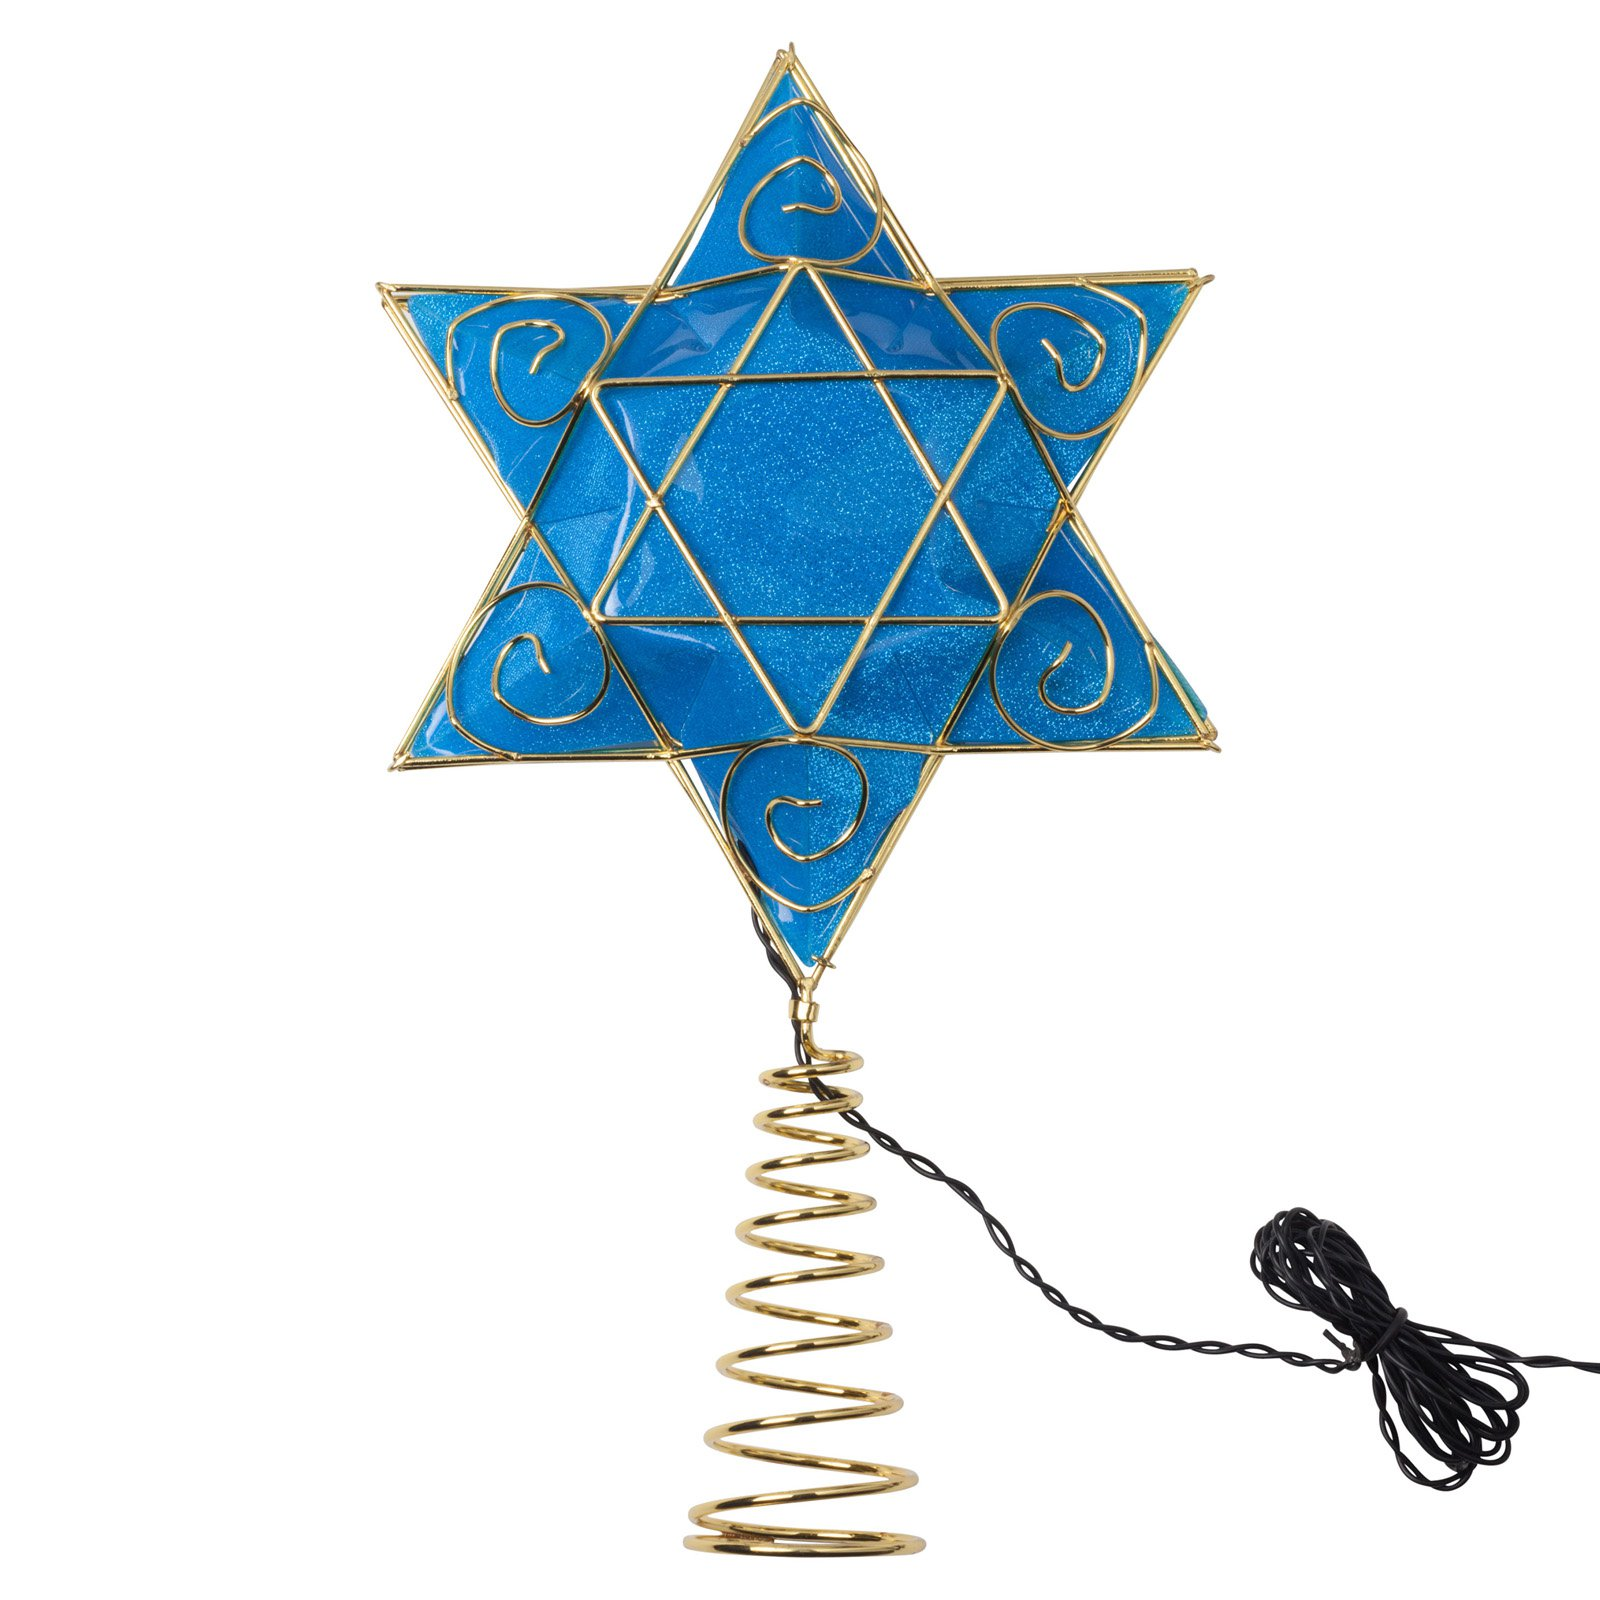 Kurt Adler 13 in. Battery-Operated Hanukkah Tree Topper